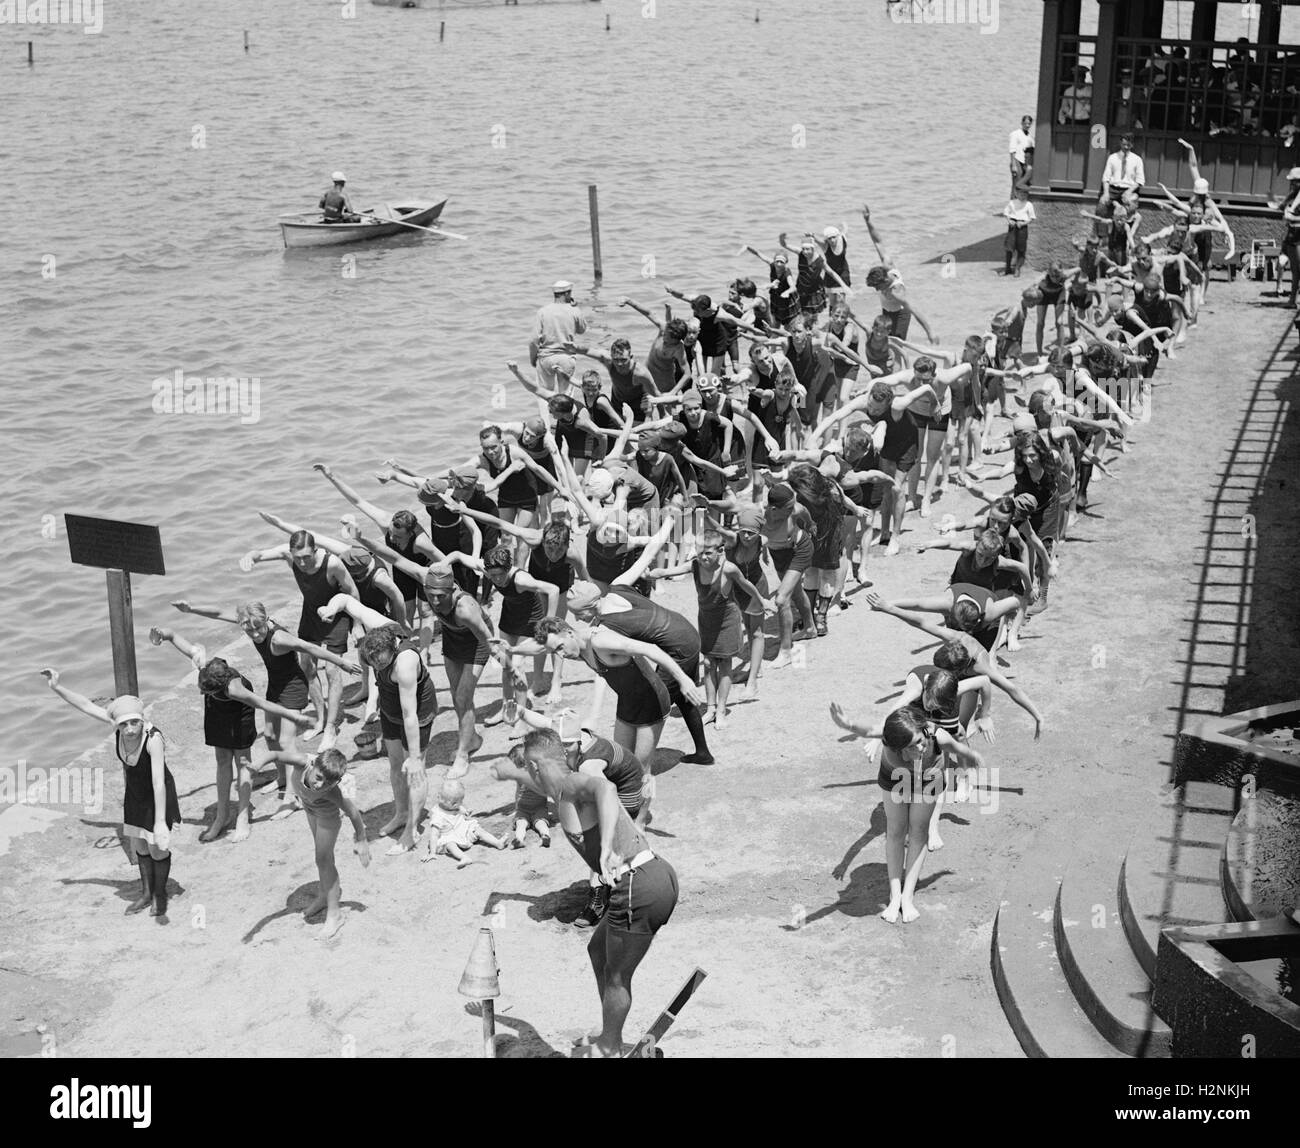 Schwimmunterricht bei Baden Beach, Washington DC, USA, National Photo Company, Juli 1922 Stockbild